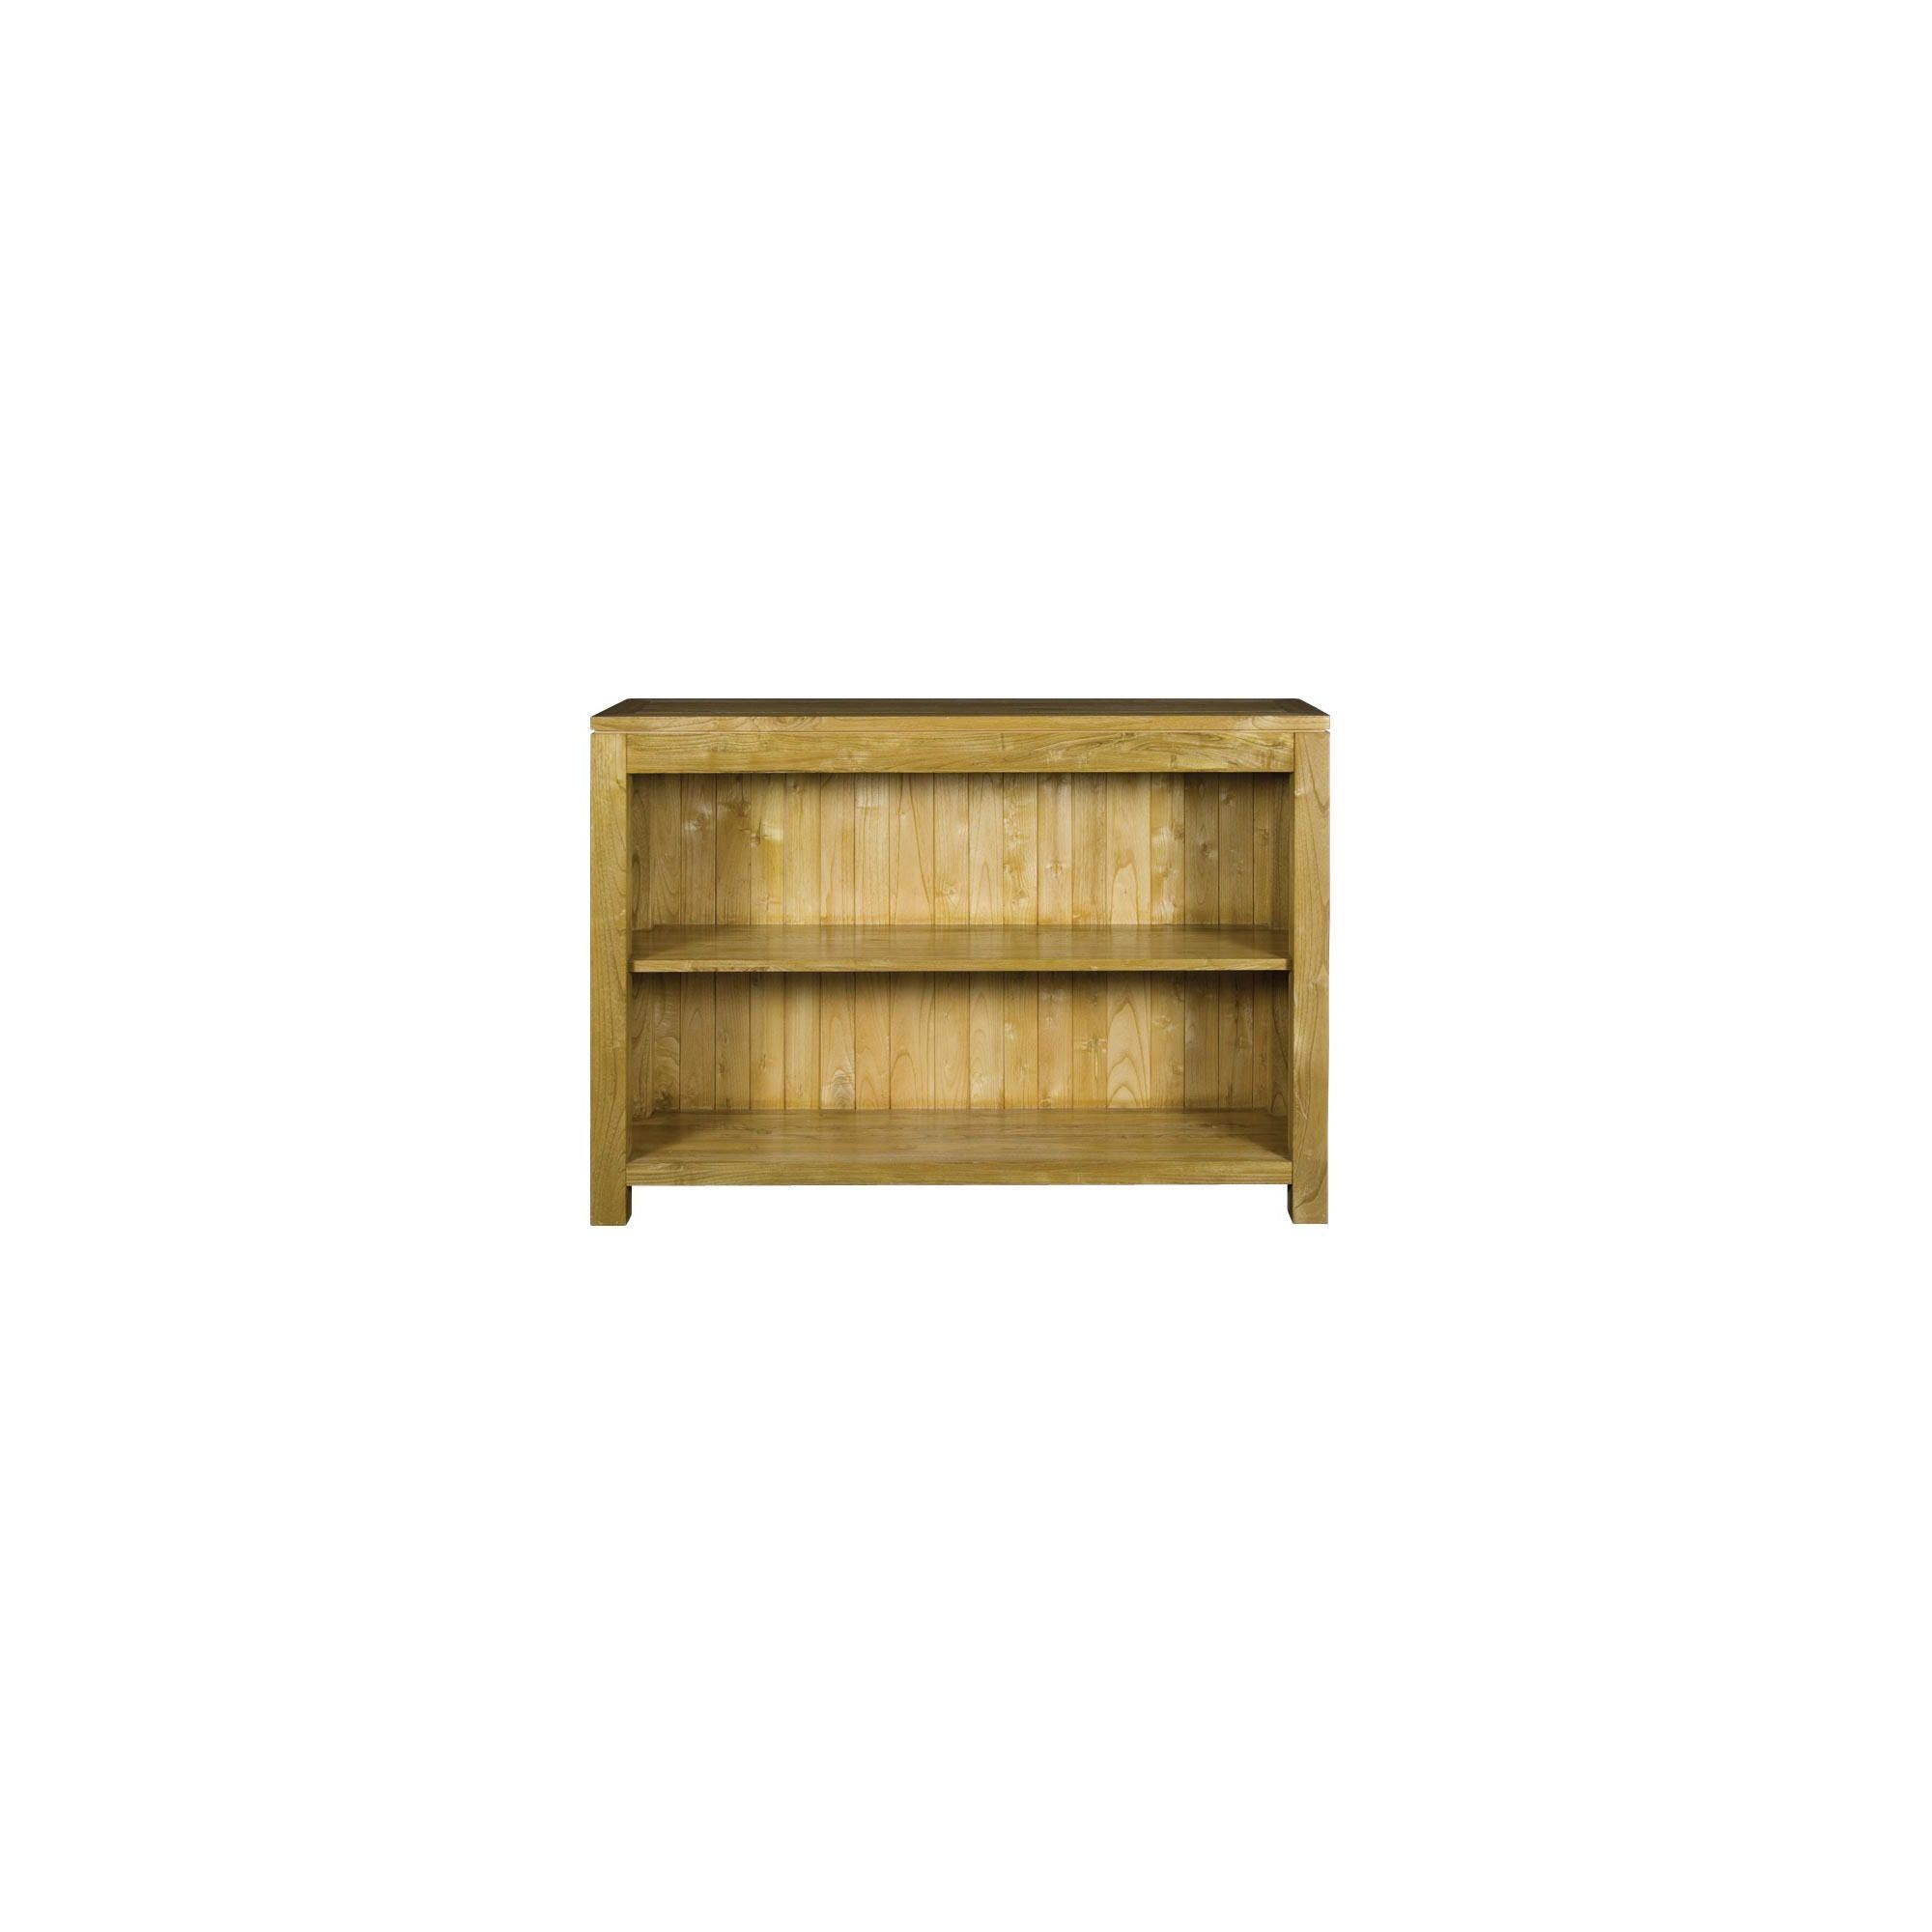 Alterton Furniture Milan Low Bookcase at Tesco Direct